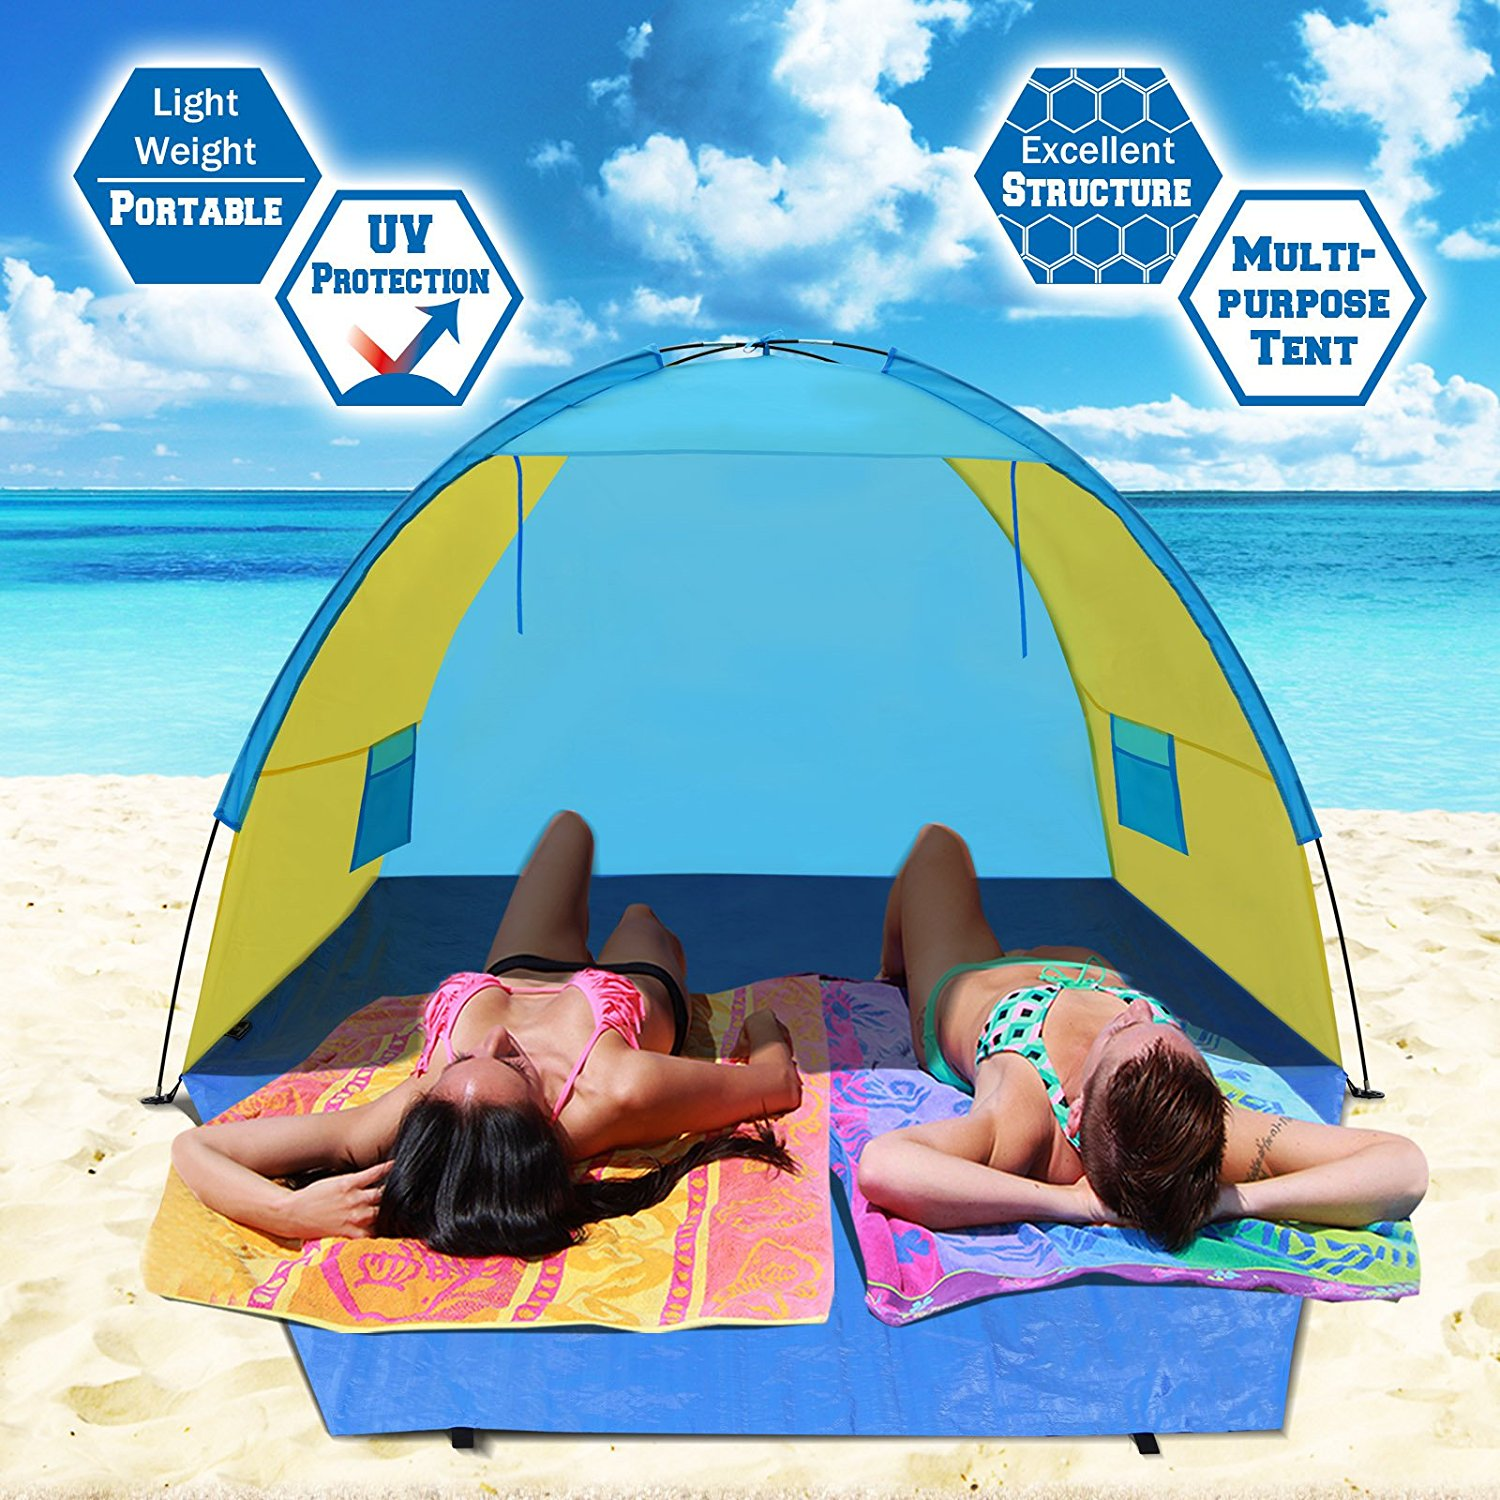 Sunrise Portable Pop Up Beach Shelter, Camping Tent, Sunshade Outdoor Canopy, Light Blue and Yellow, W/Carry Bag